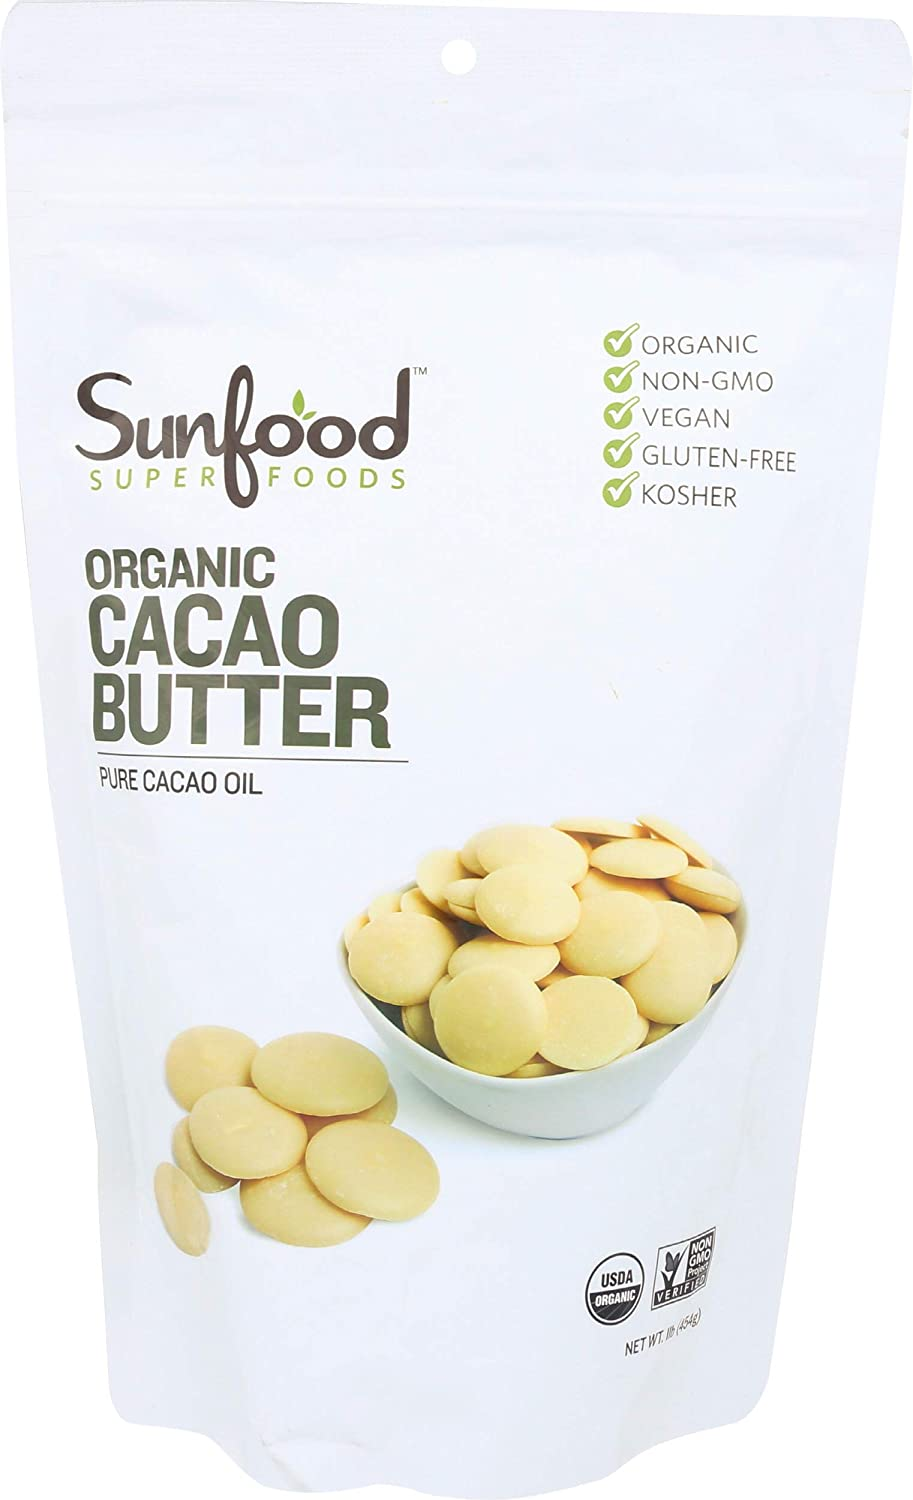 Sunfood Cacao Butter Image